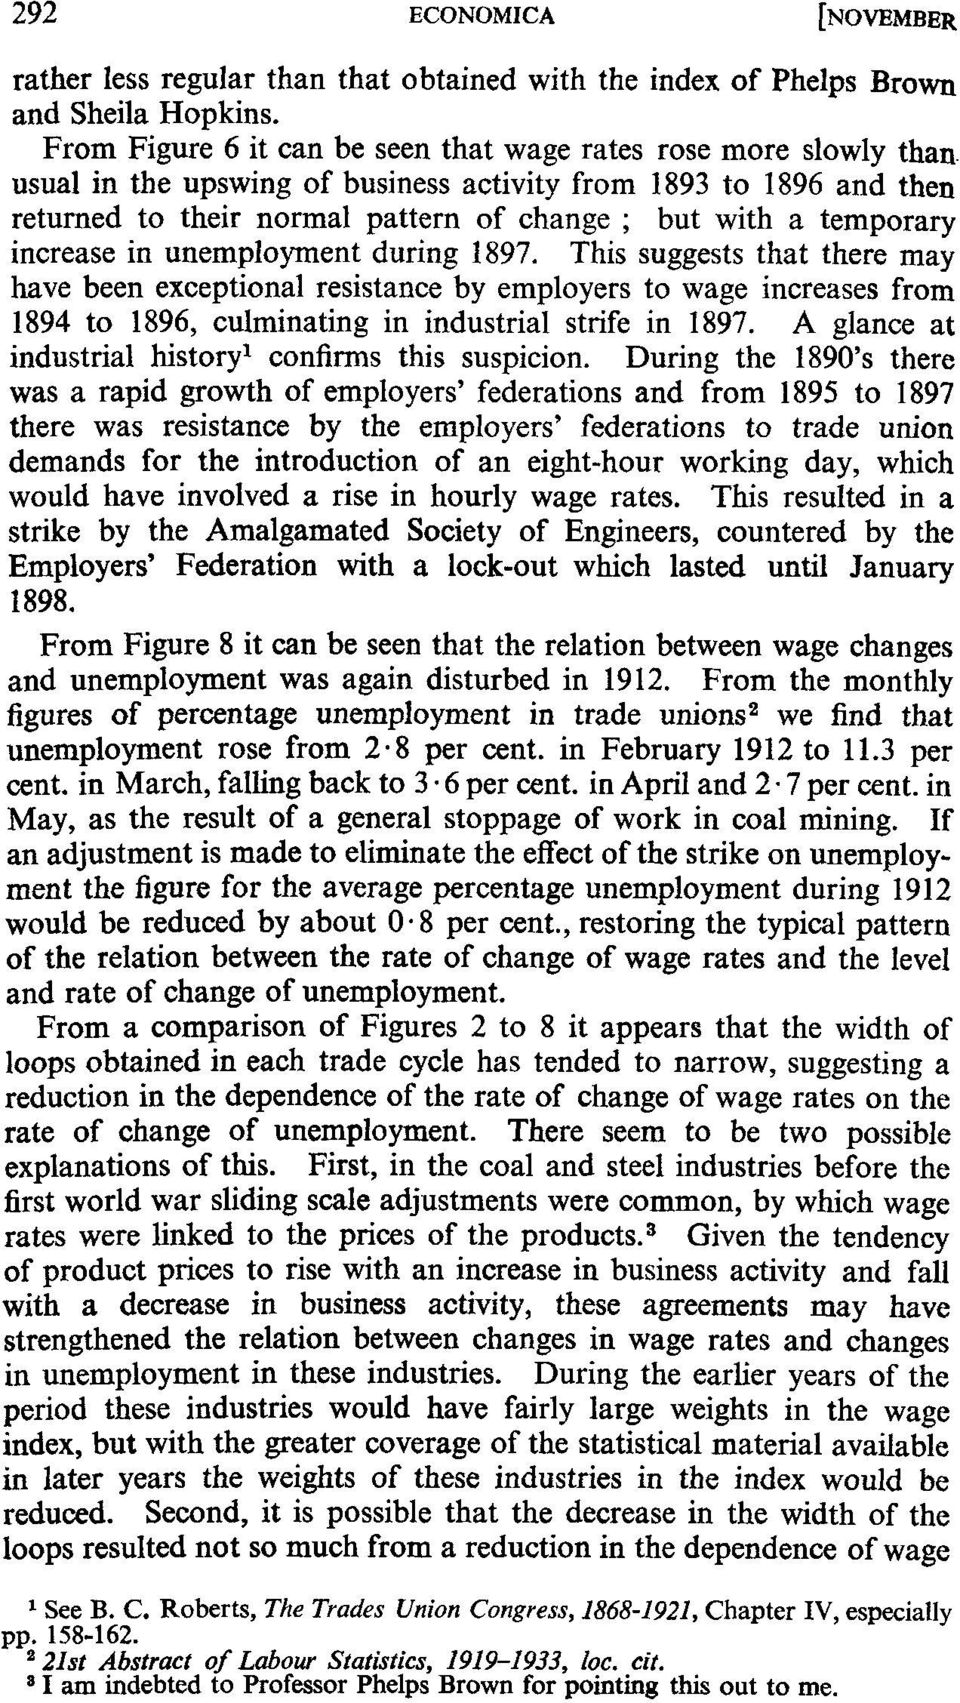 This suggests that there may have been exceptional resistance by employers to wage increases from 1894 to 1896, culminating in industrial strife in 1897.